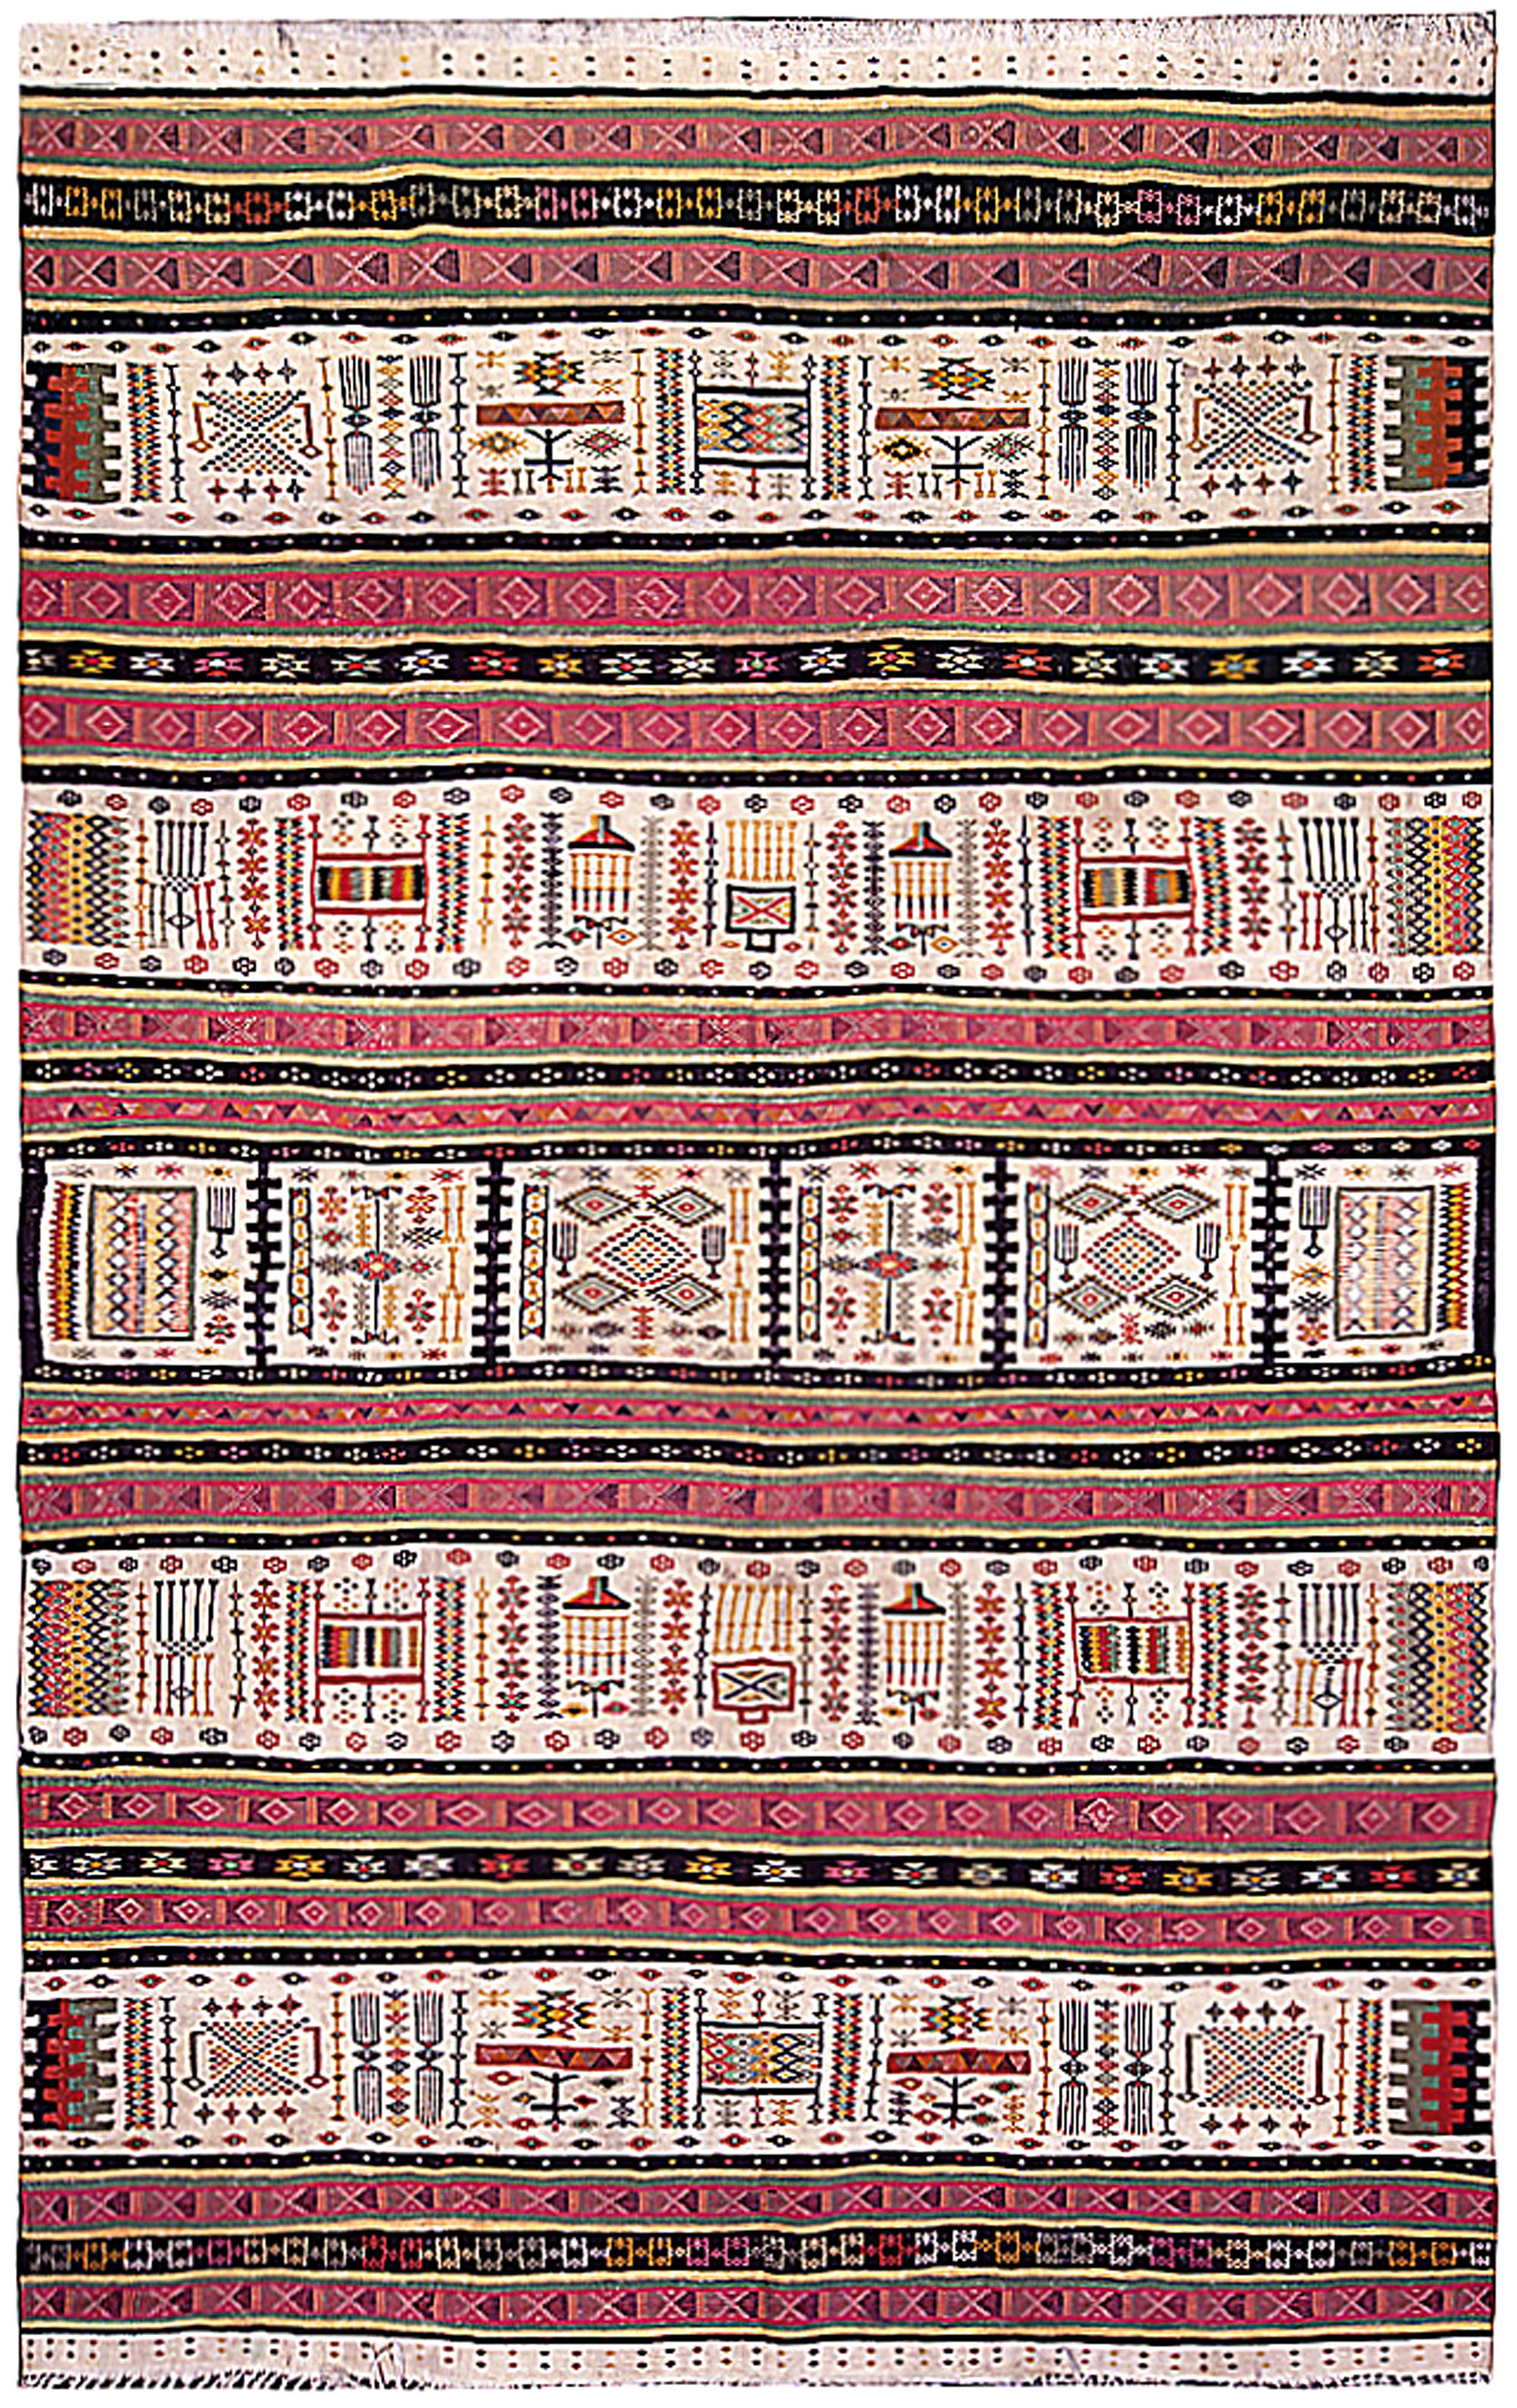 Antique Turkish Kilim Rug Bb4860 By Doris Leslie Blau